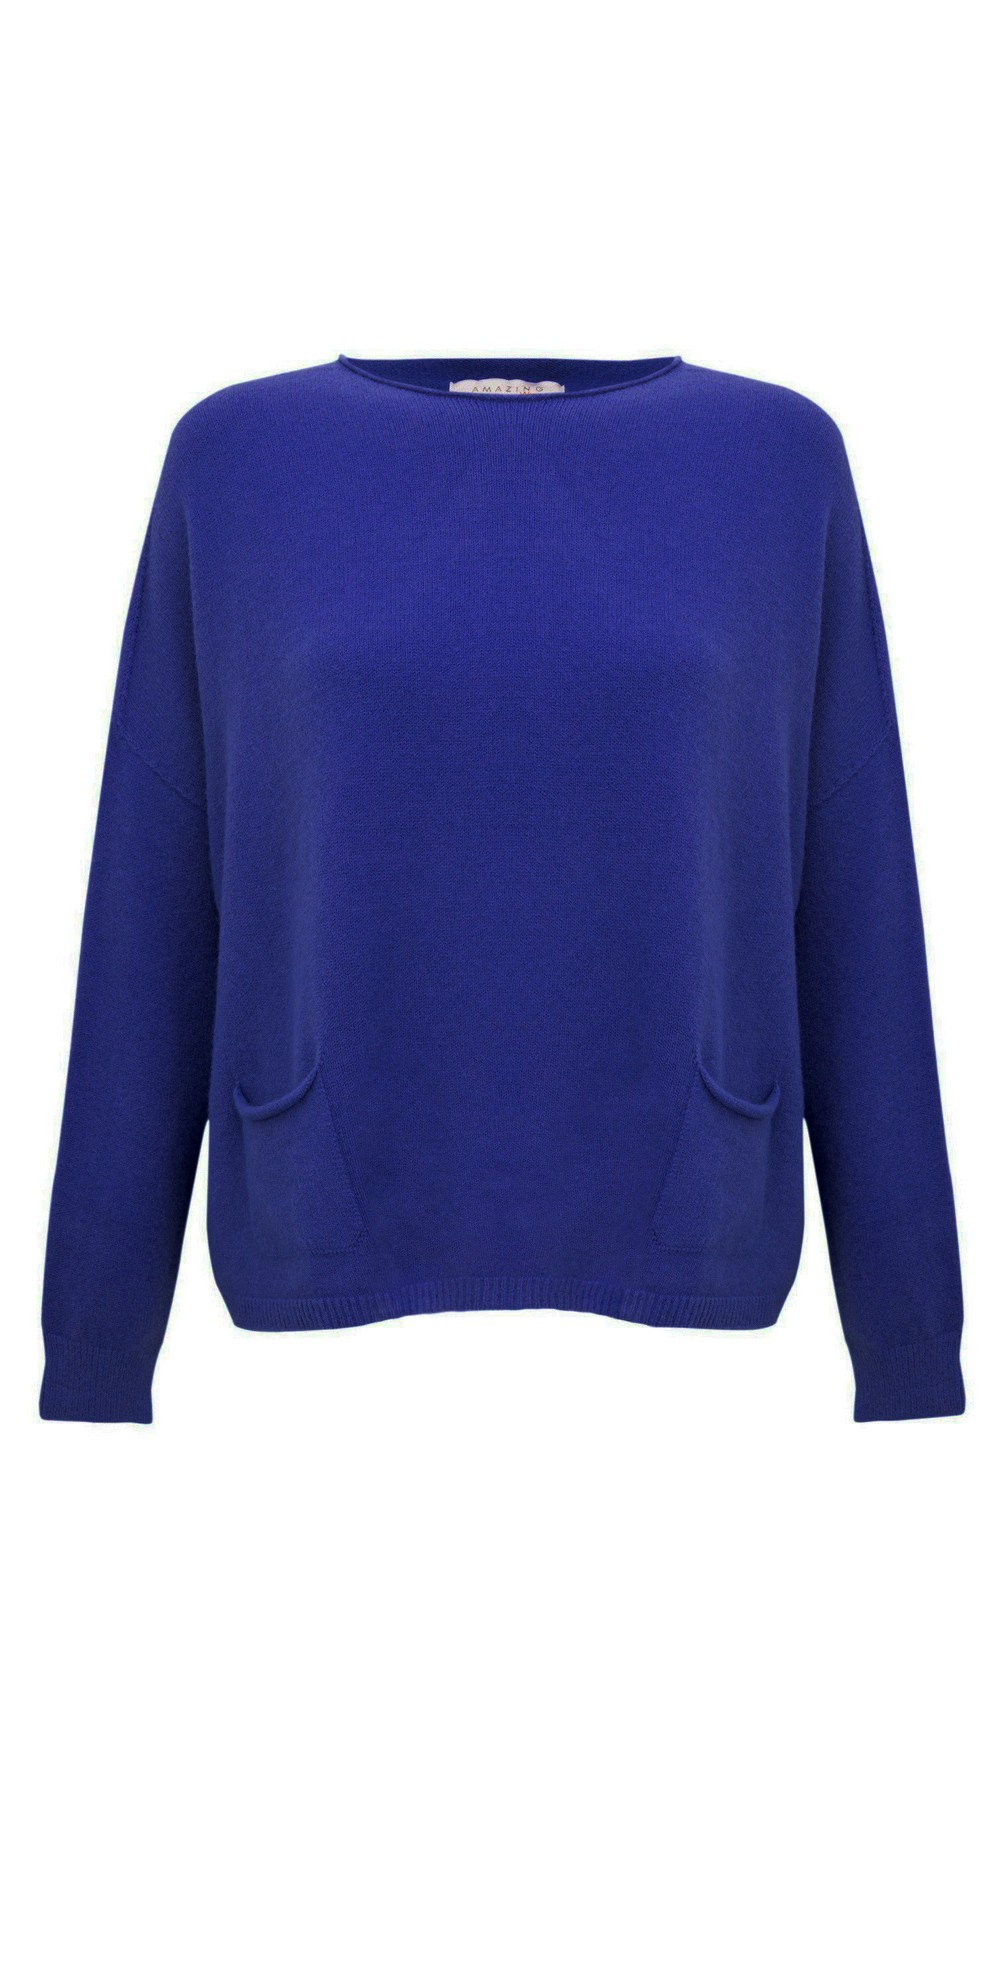 Jodie Front Pocket Supersoft Knit Jumper main image